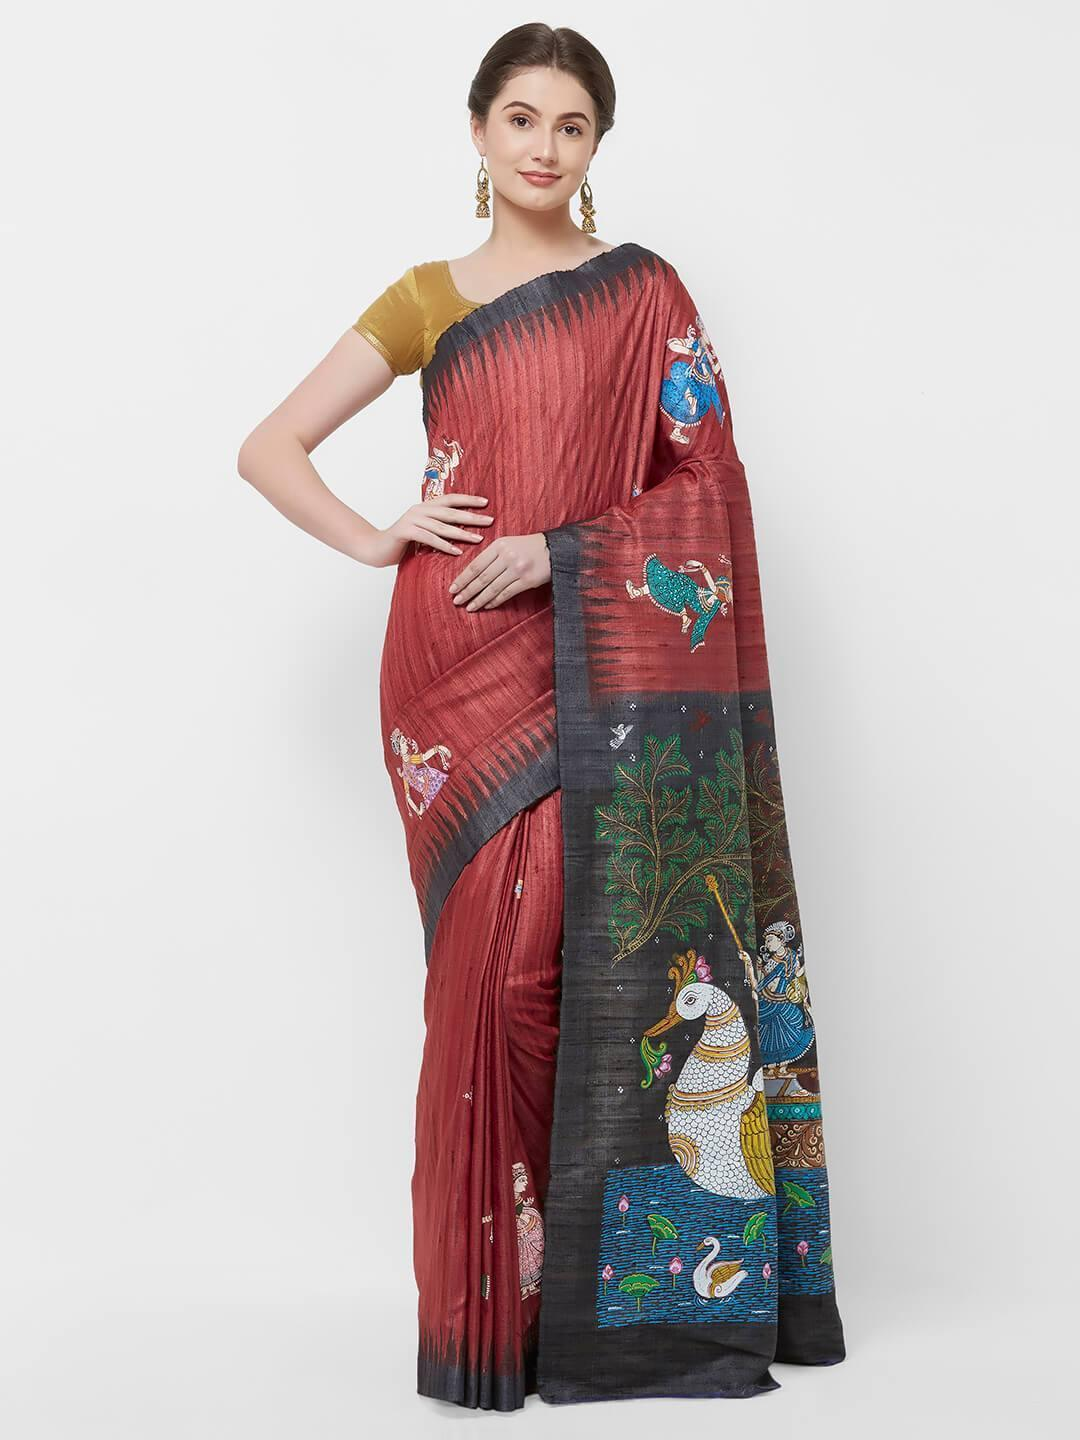 CraftsCollection.in -Red Tussar Ghicha Silk with handpainted Pattachitra Motifs